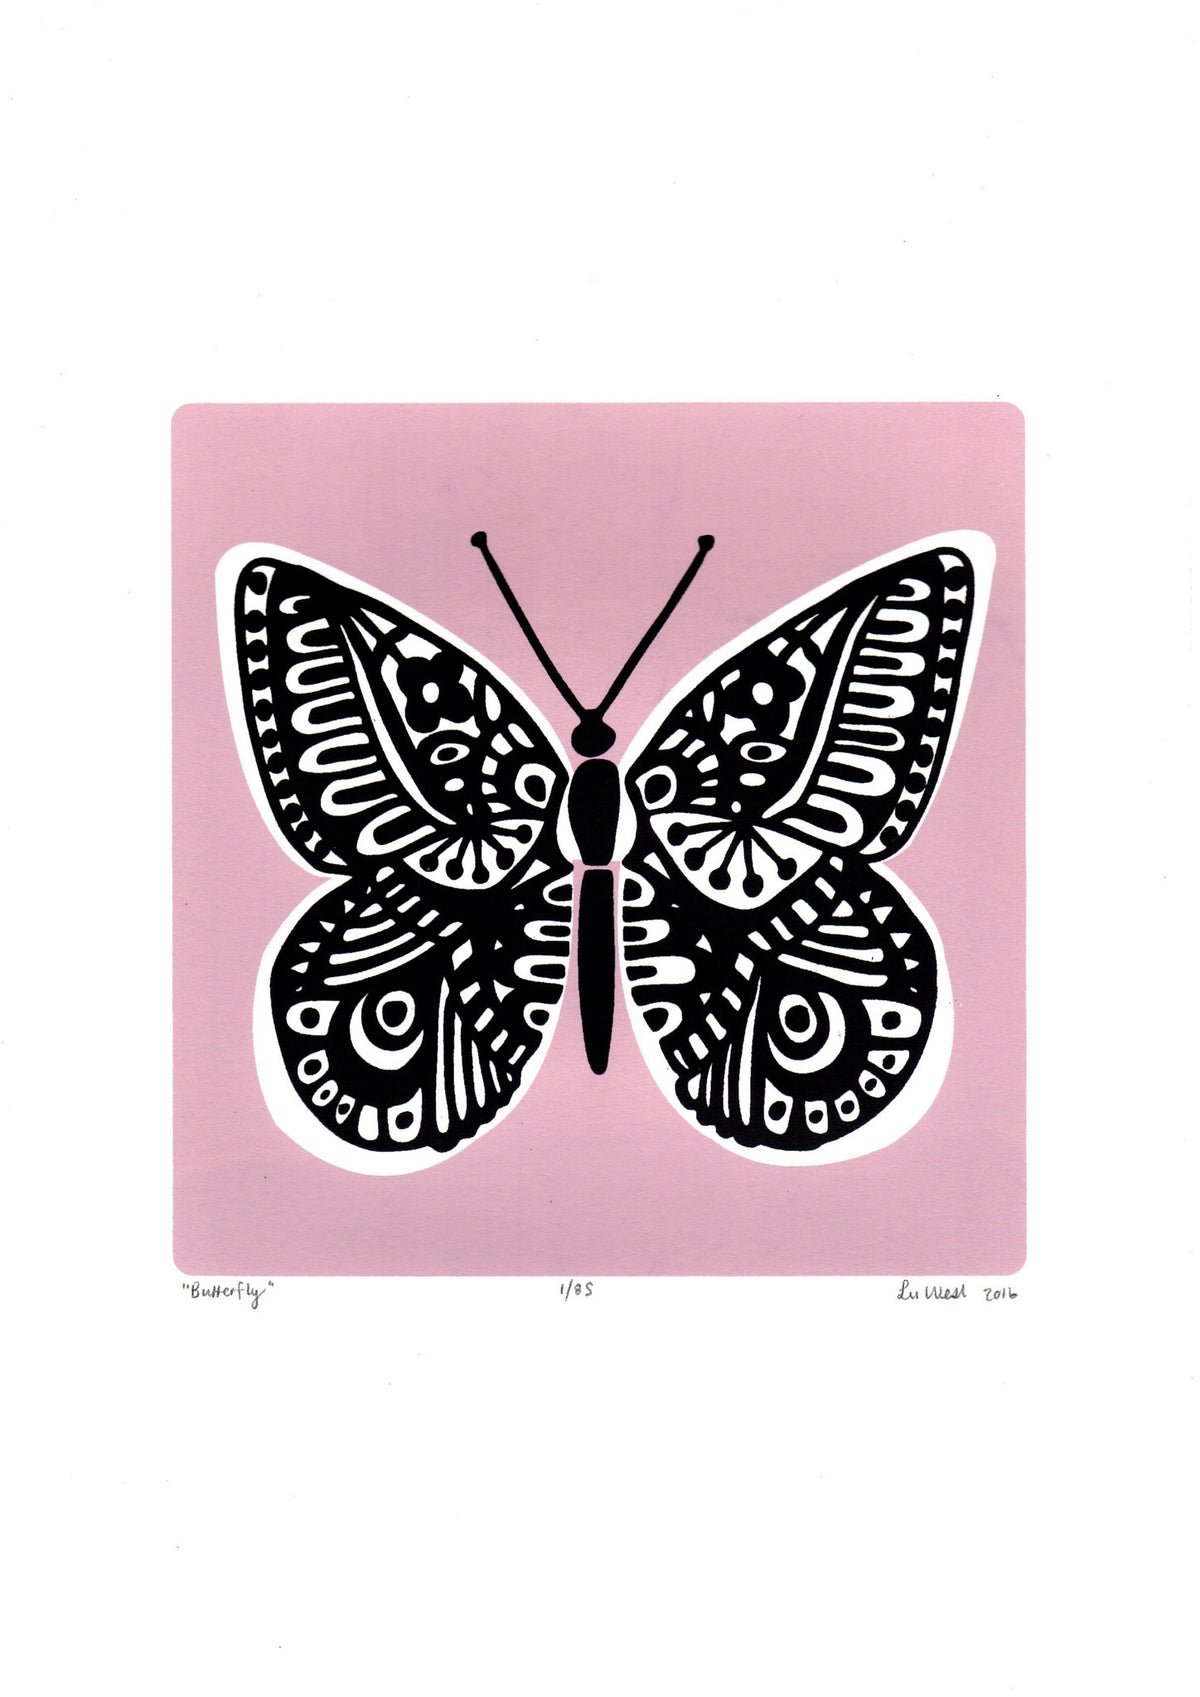 Limited edition Butterfly screen print in powder pink. Illustrated botanical prints in a simple, Scandinavian style.